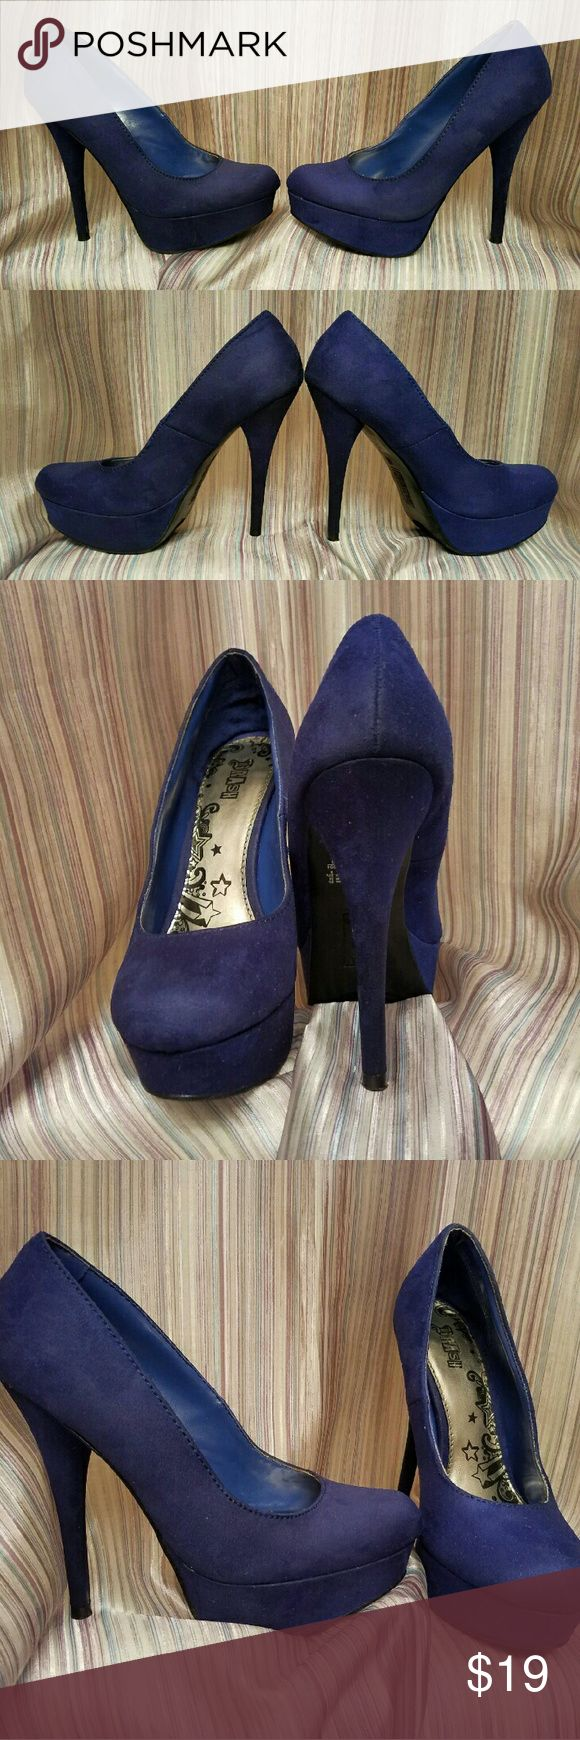 1000  ideas about Royal Blue High Heels on Pinterest | Blue High ...